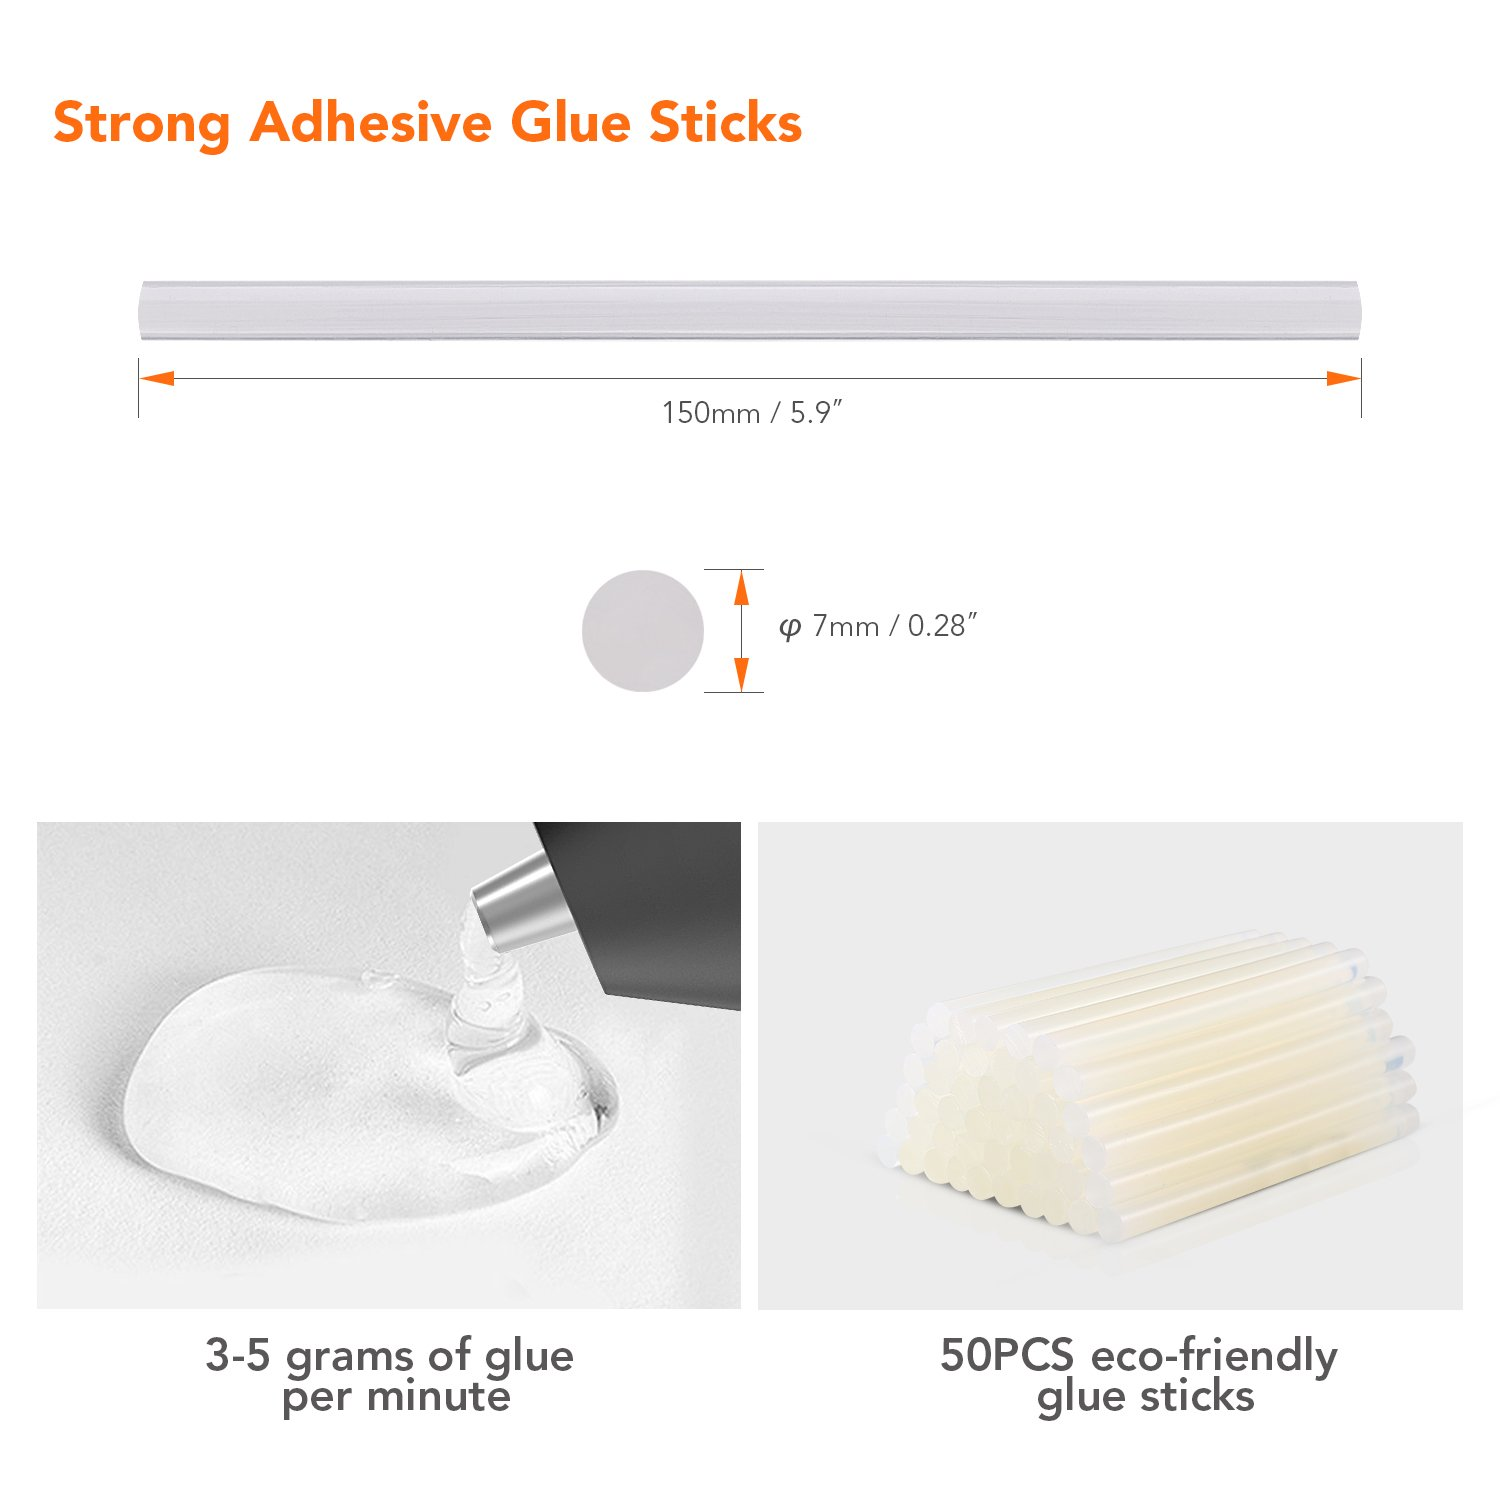 Hot Glue Gun Cordless with 50pcs Glue Sticks, Tacklife 3.6V Rechargeable Melting Glue Gun with USB Charging Cable, Seperate On/Off Switch for DIY and Repair Kit - GGH01DC by TACKLIFE (Image #4)